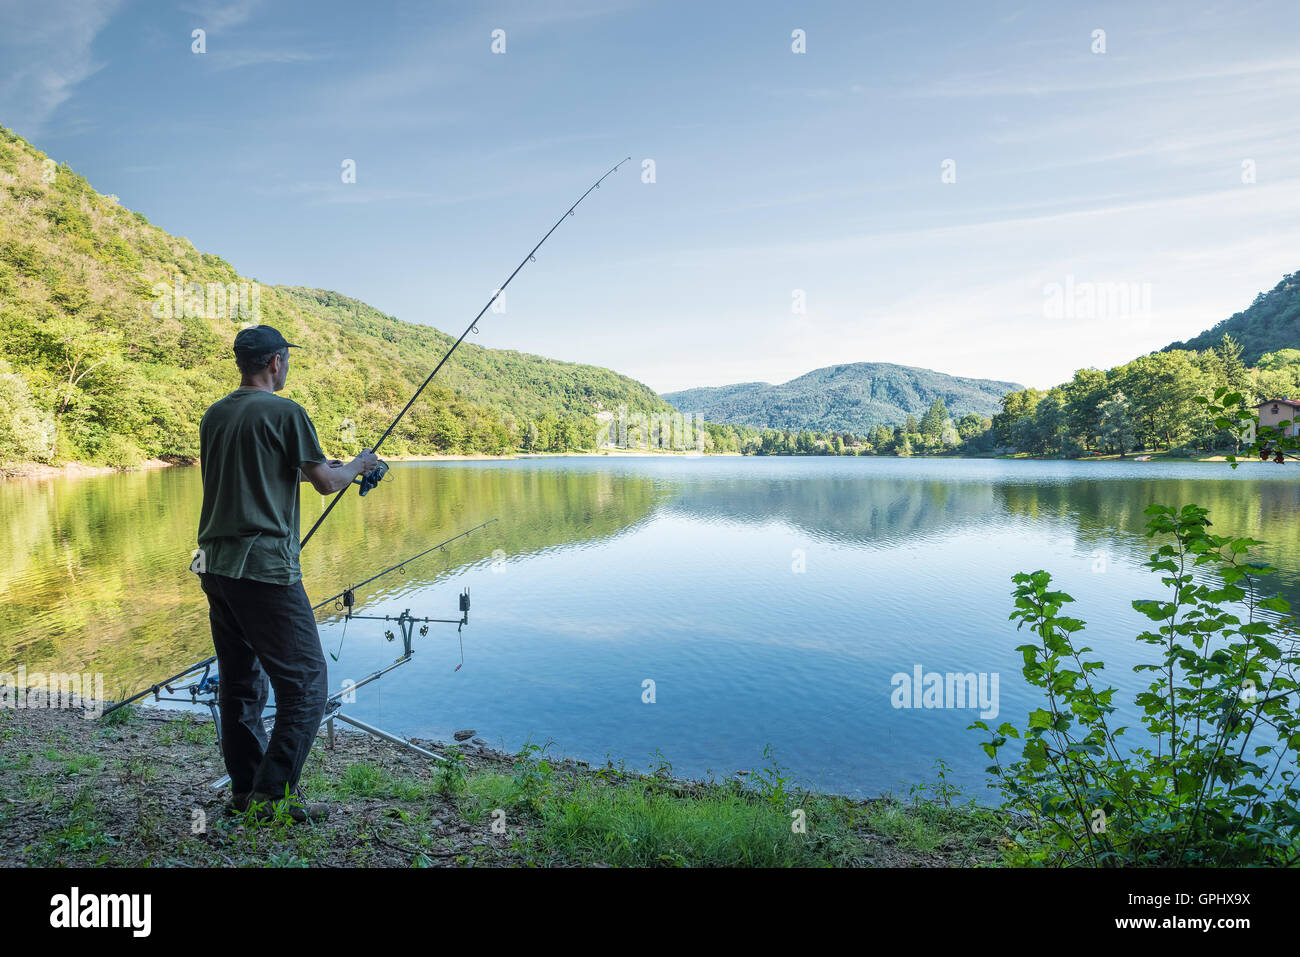 Fishing adventures. Fisherman is fishing on the banks of a lake Stock Photo